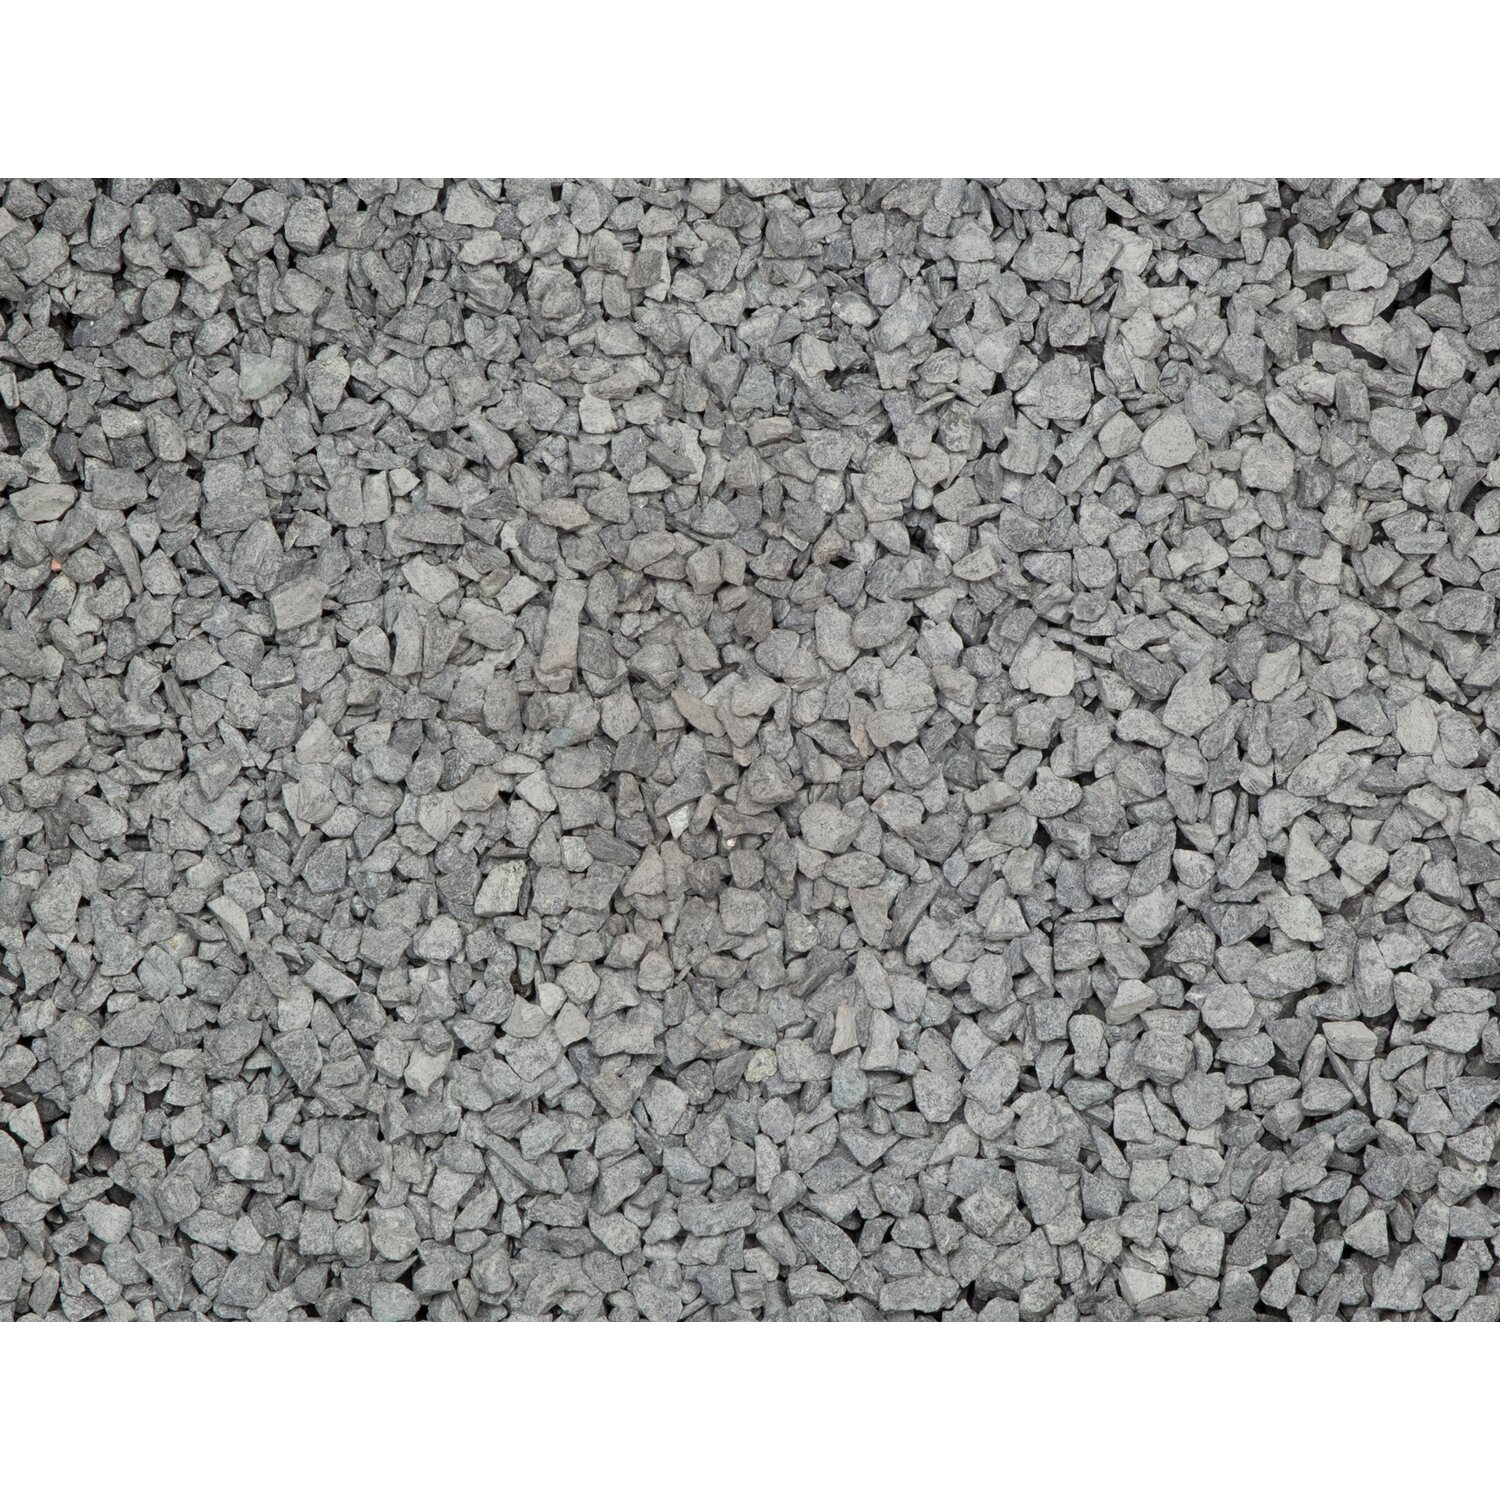 Basalt splitt anthrazit grau 8 mm 12 mm 15 kg sack for Anthrazit kieselsteine